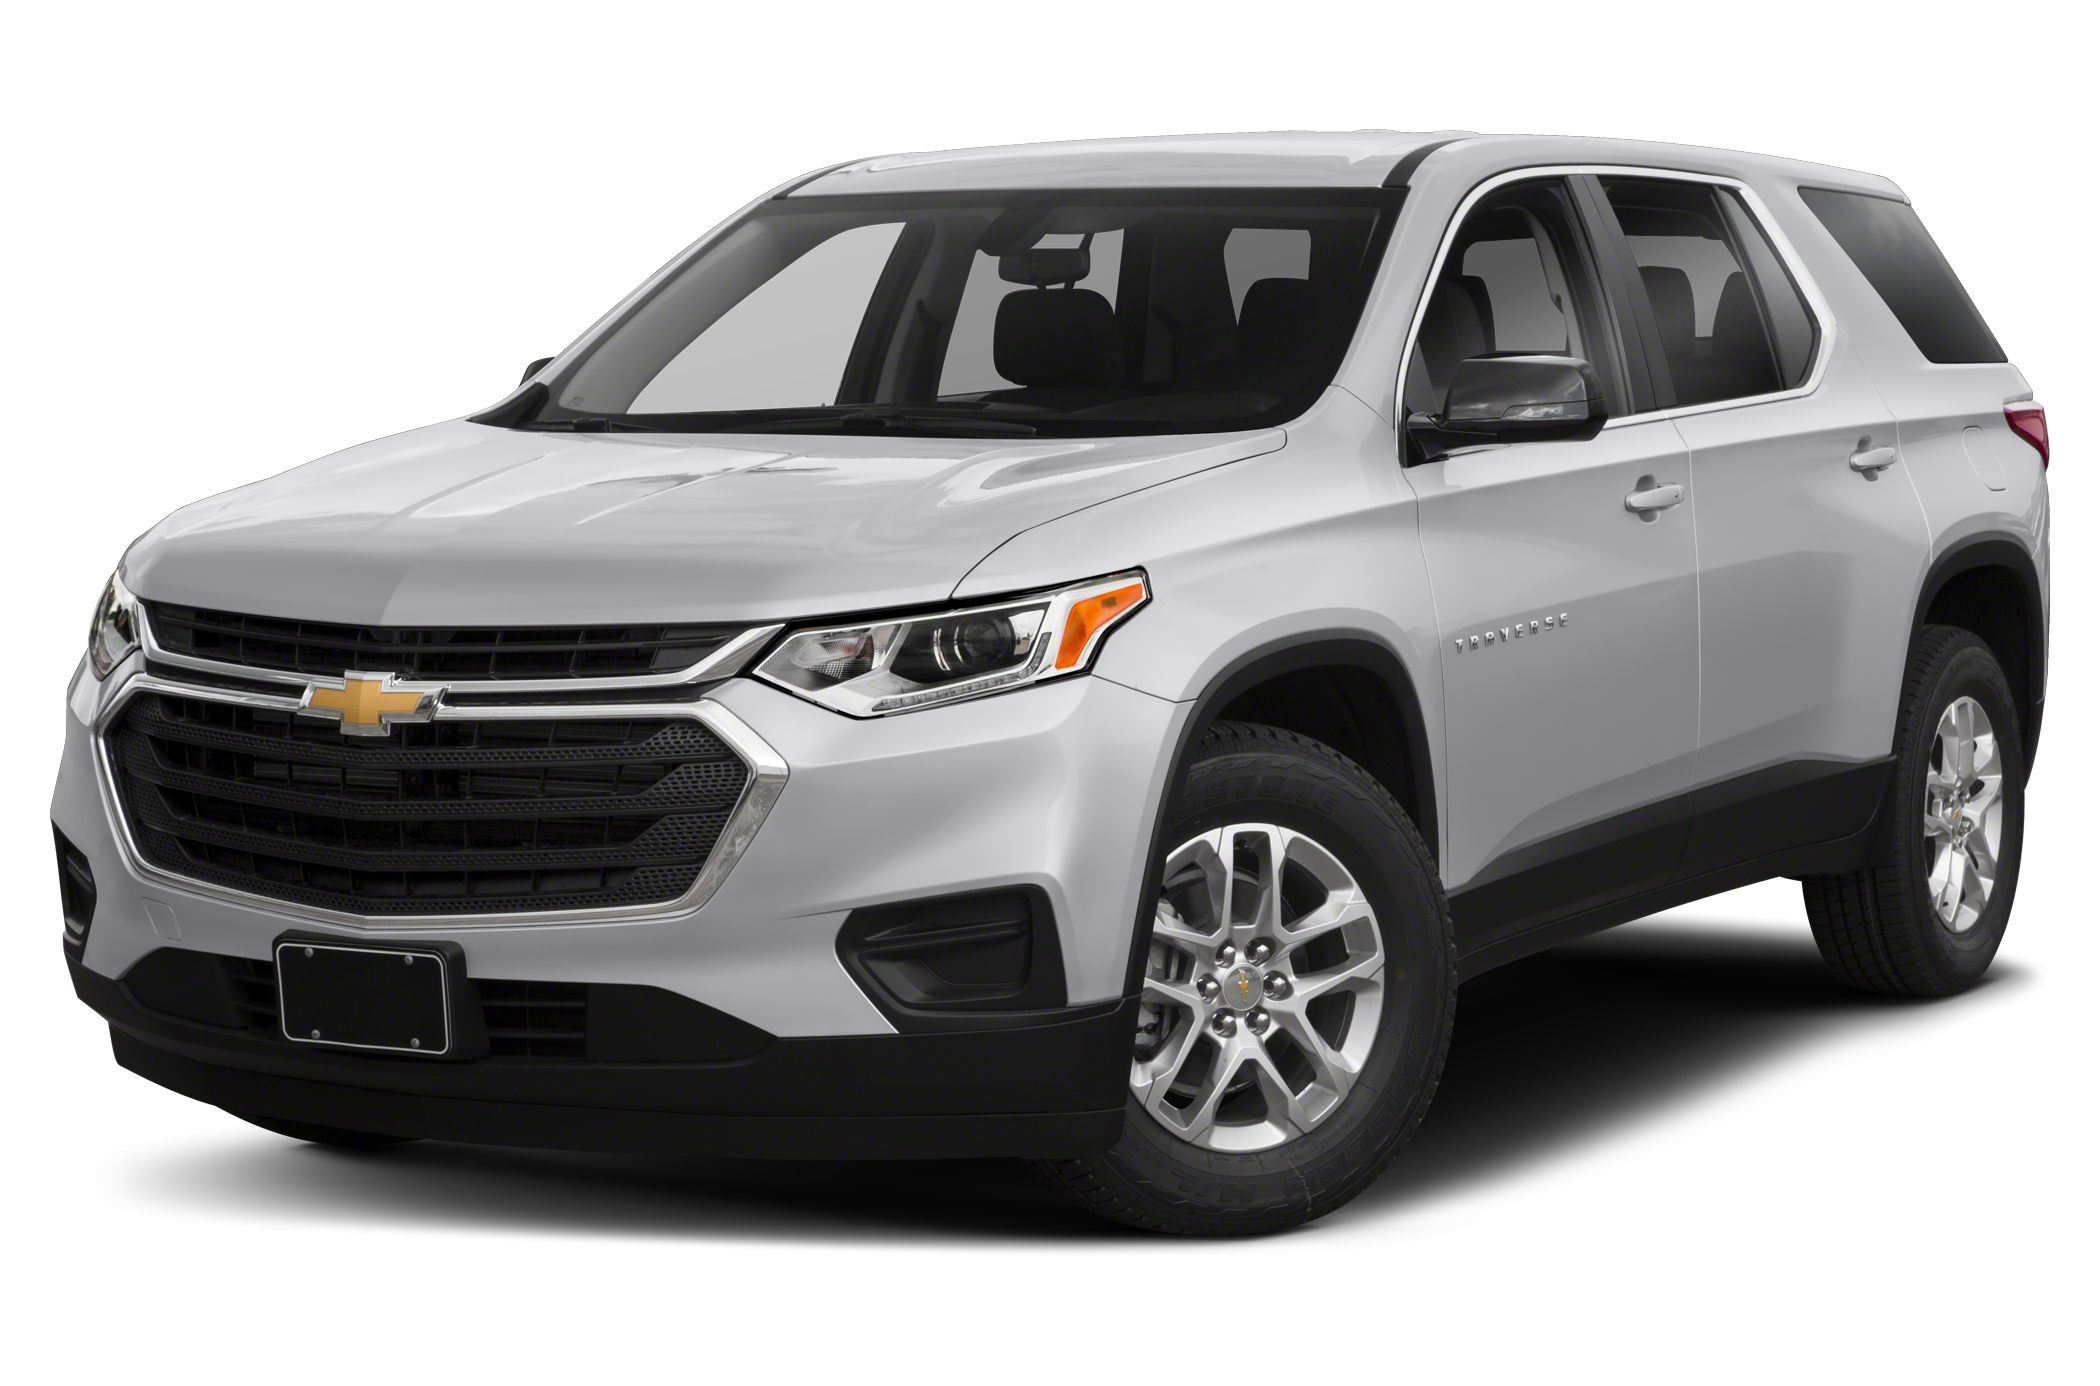 2018 Dodge Durango Vs 2018 Chevrolet Traverse Dave Warren